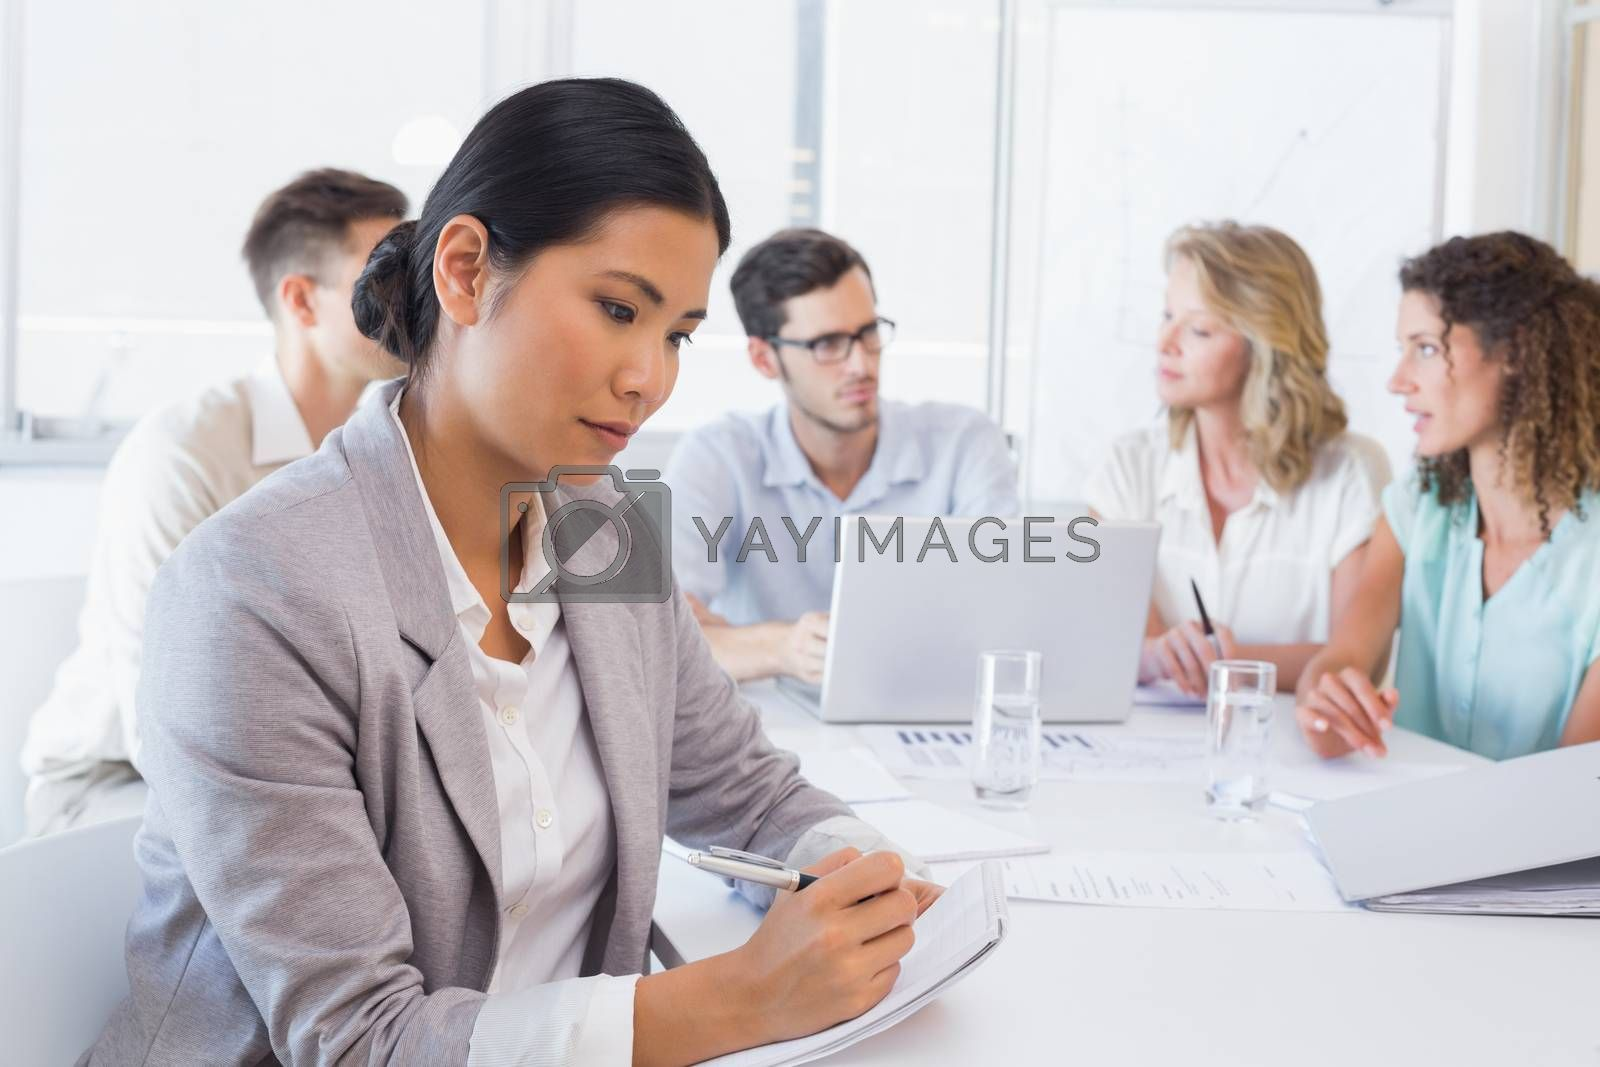 Royalty free image of Casual businesswoman taking notes during meeting by Wavebreakmedia